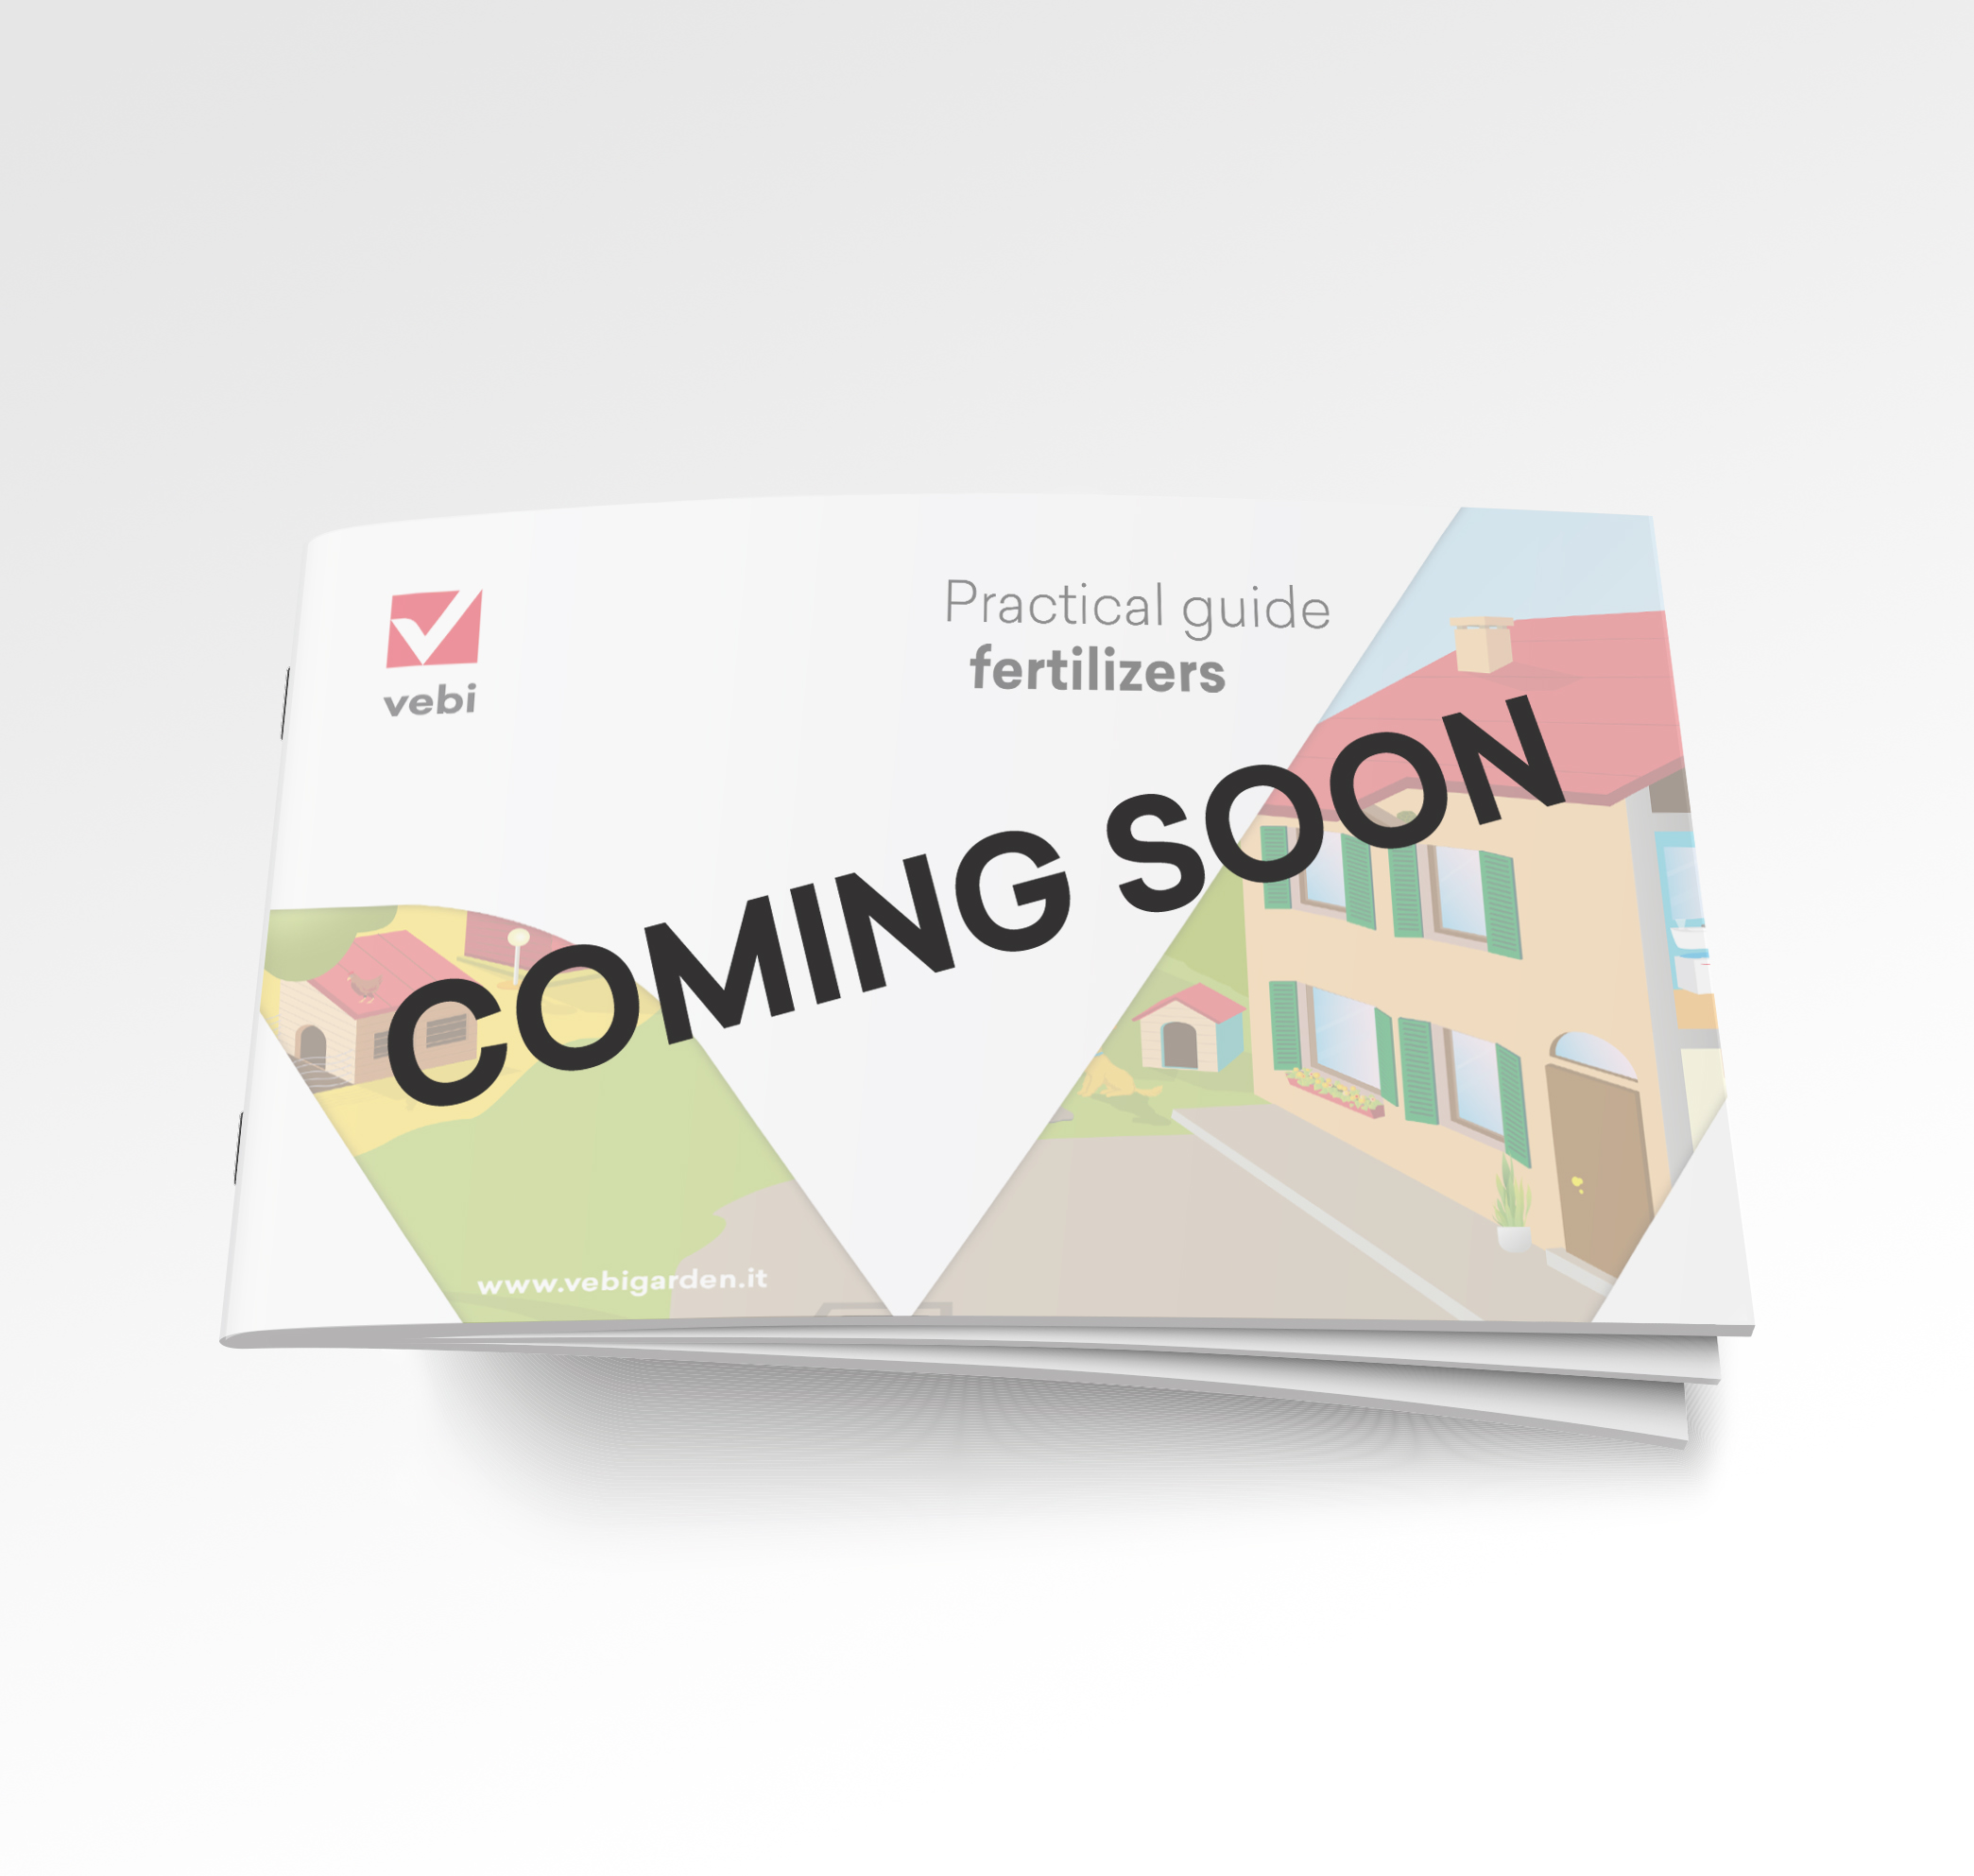 Fertilizers - Practical Guide Coming Soon